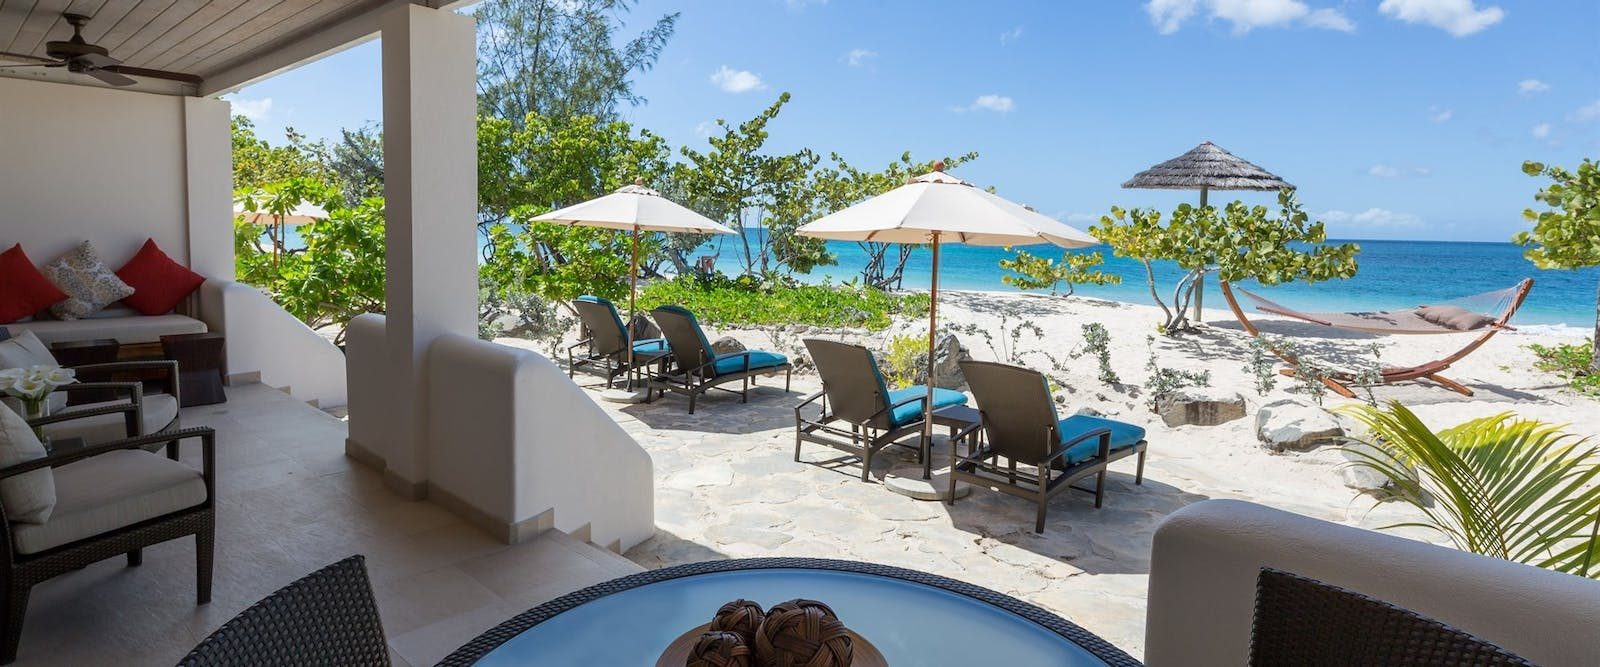 Suites at Spice Island Beach Resort, Grenada